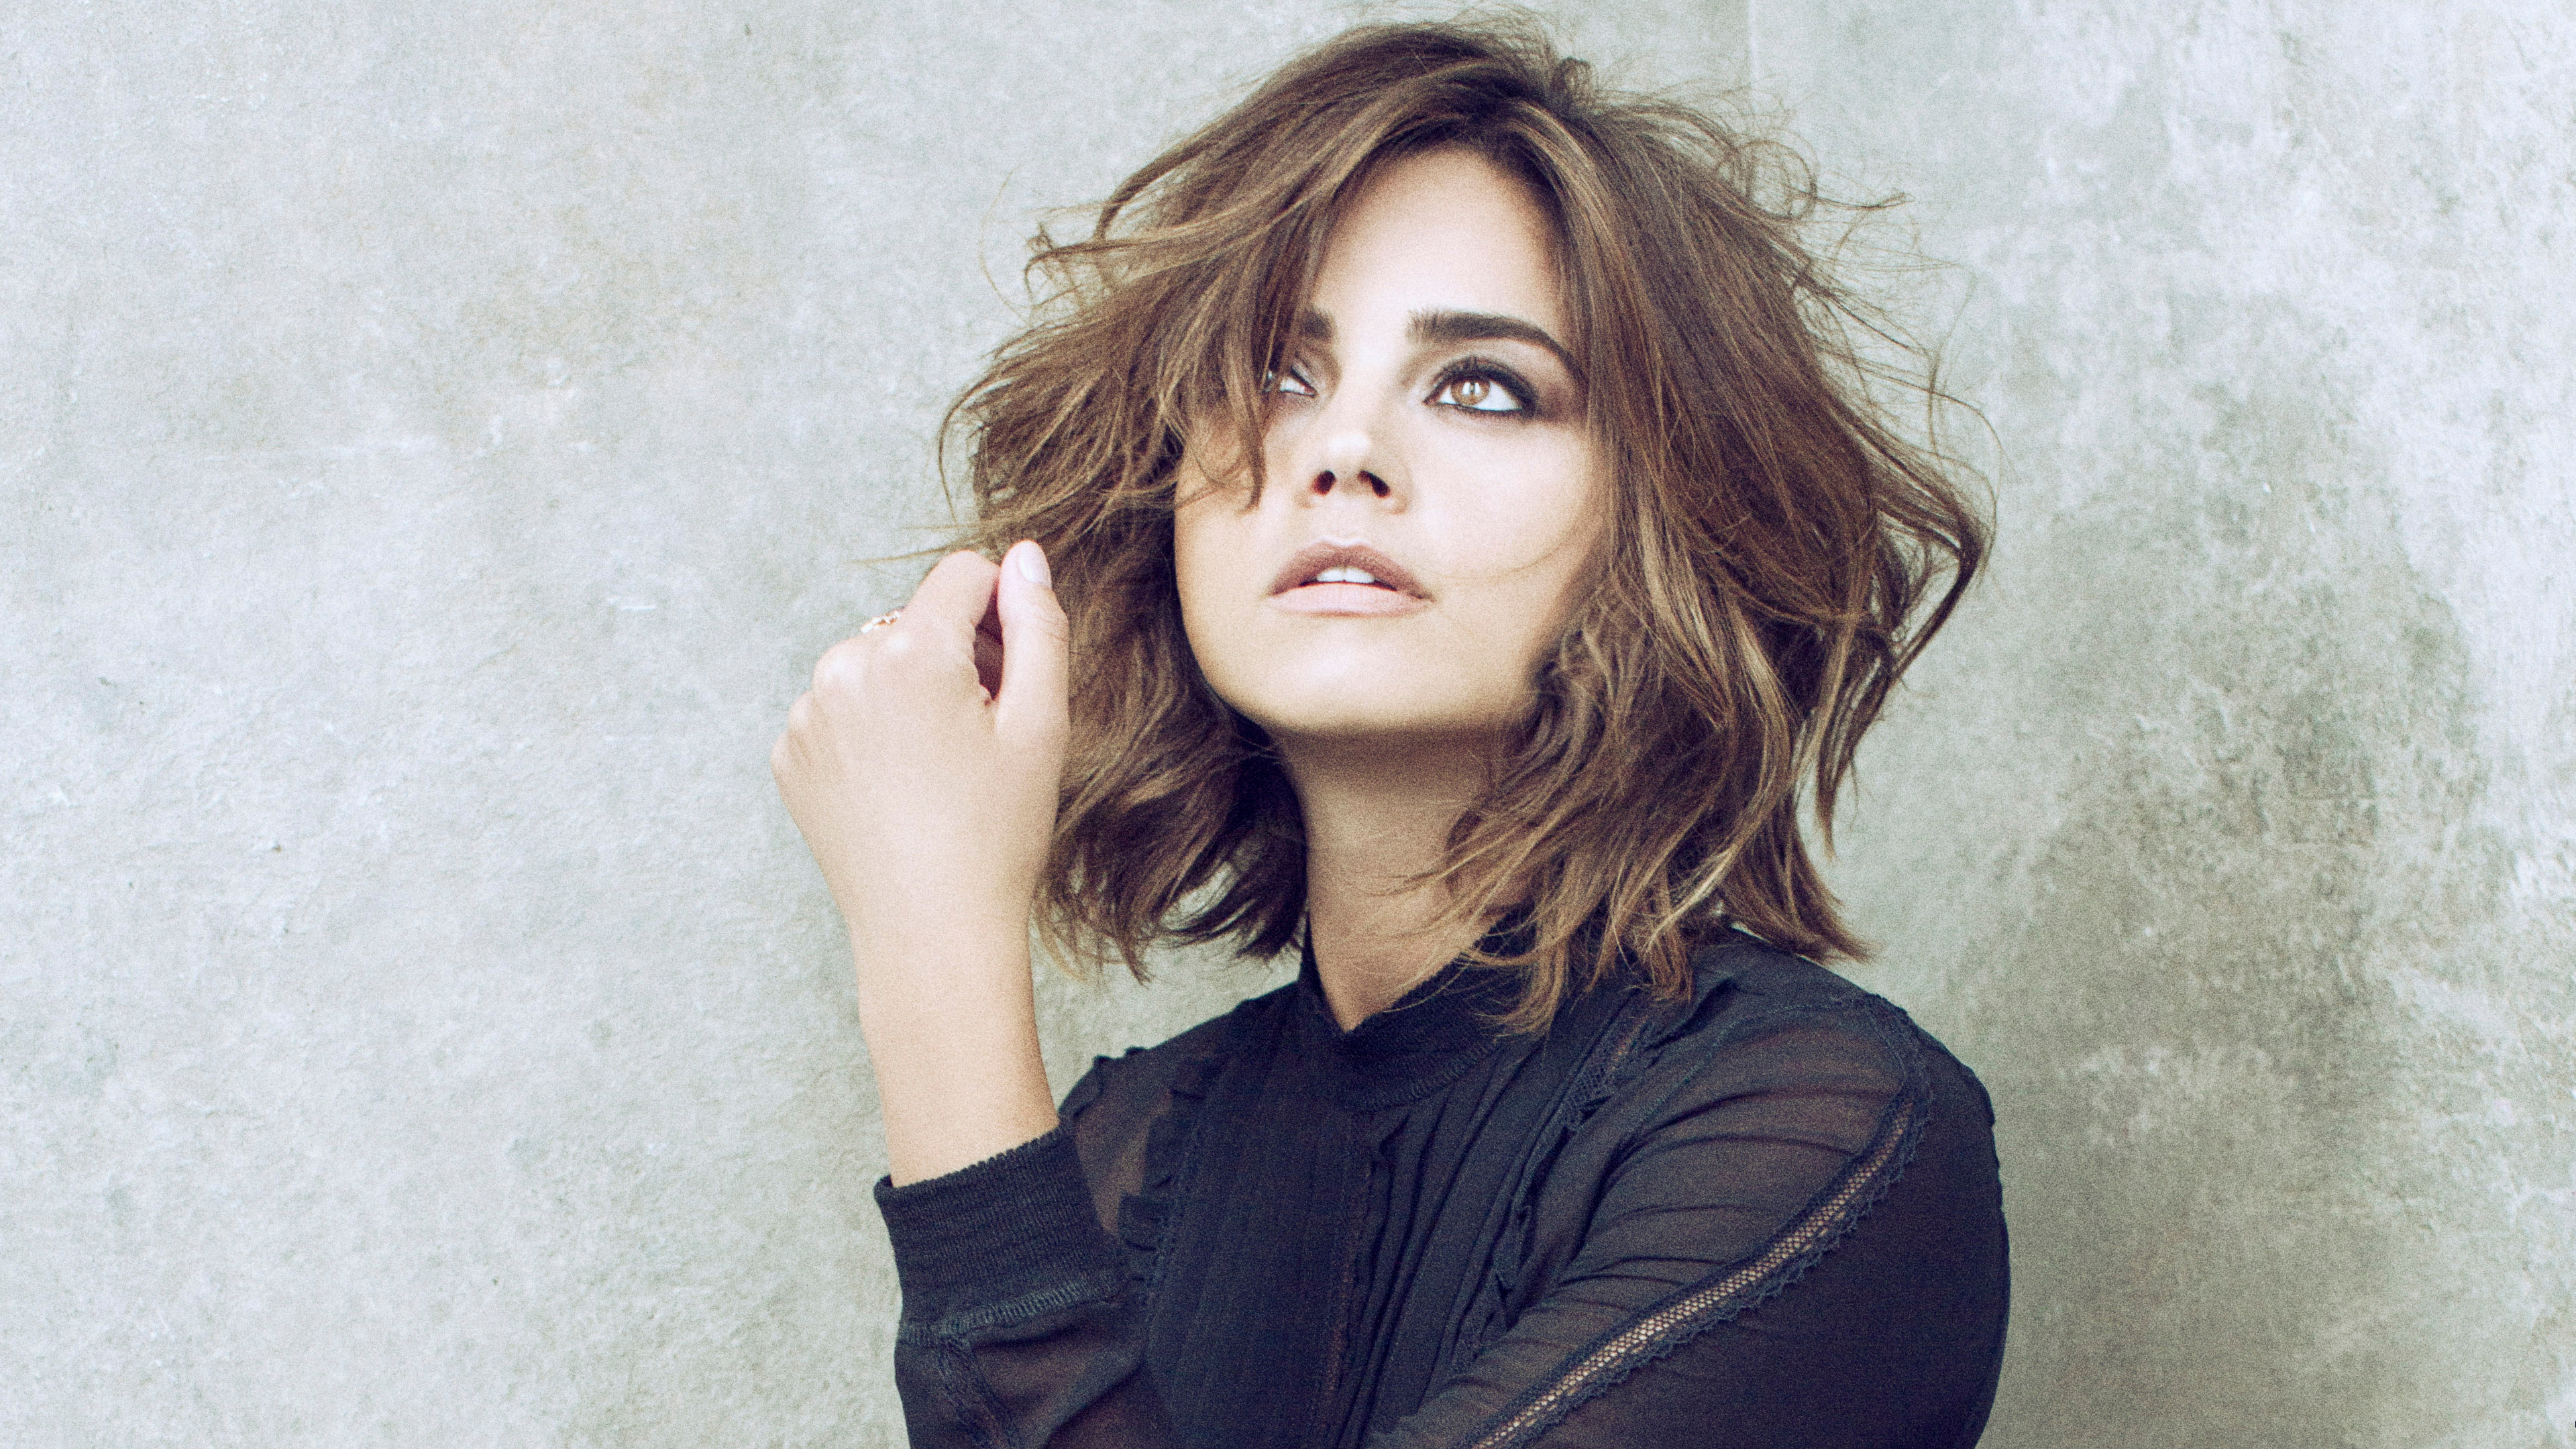 jenna coleman 4k 2019 1547937586 - Jenna Coleman 4k 2019 - jenna coleman wallpapers, hd-wallpapers, girls wallpapers, celebrities wallpapers, 4k-wallpapers